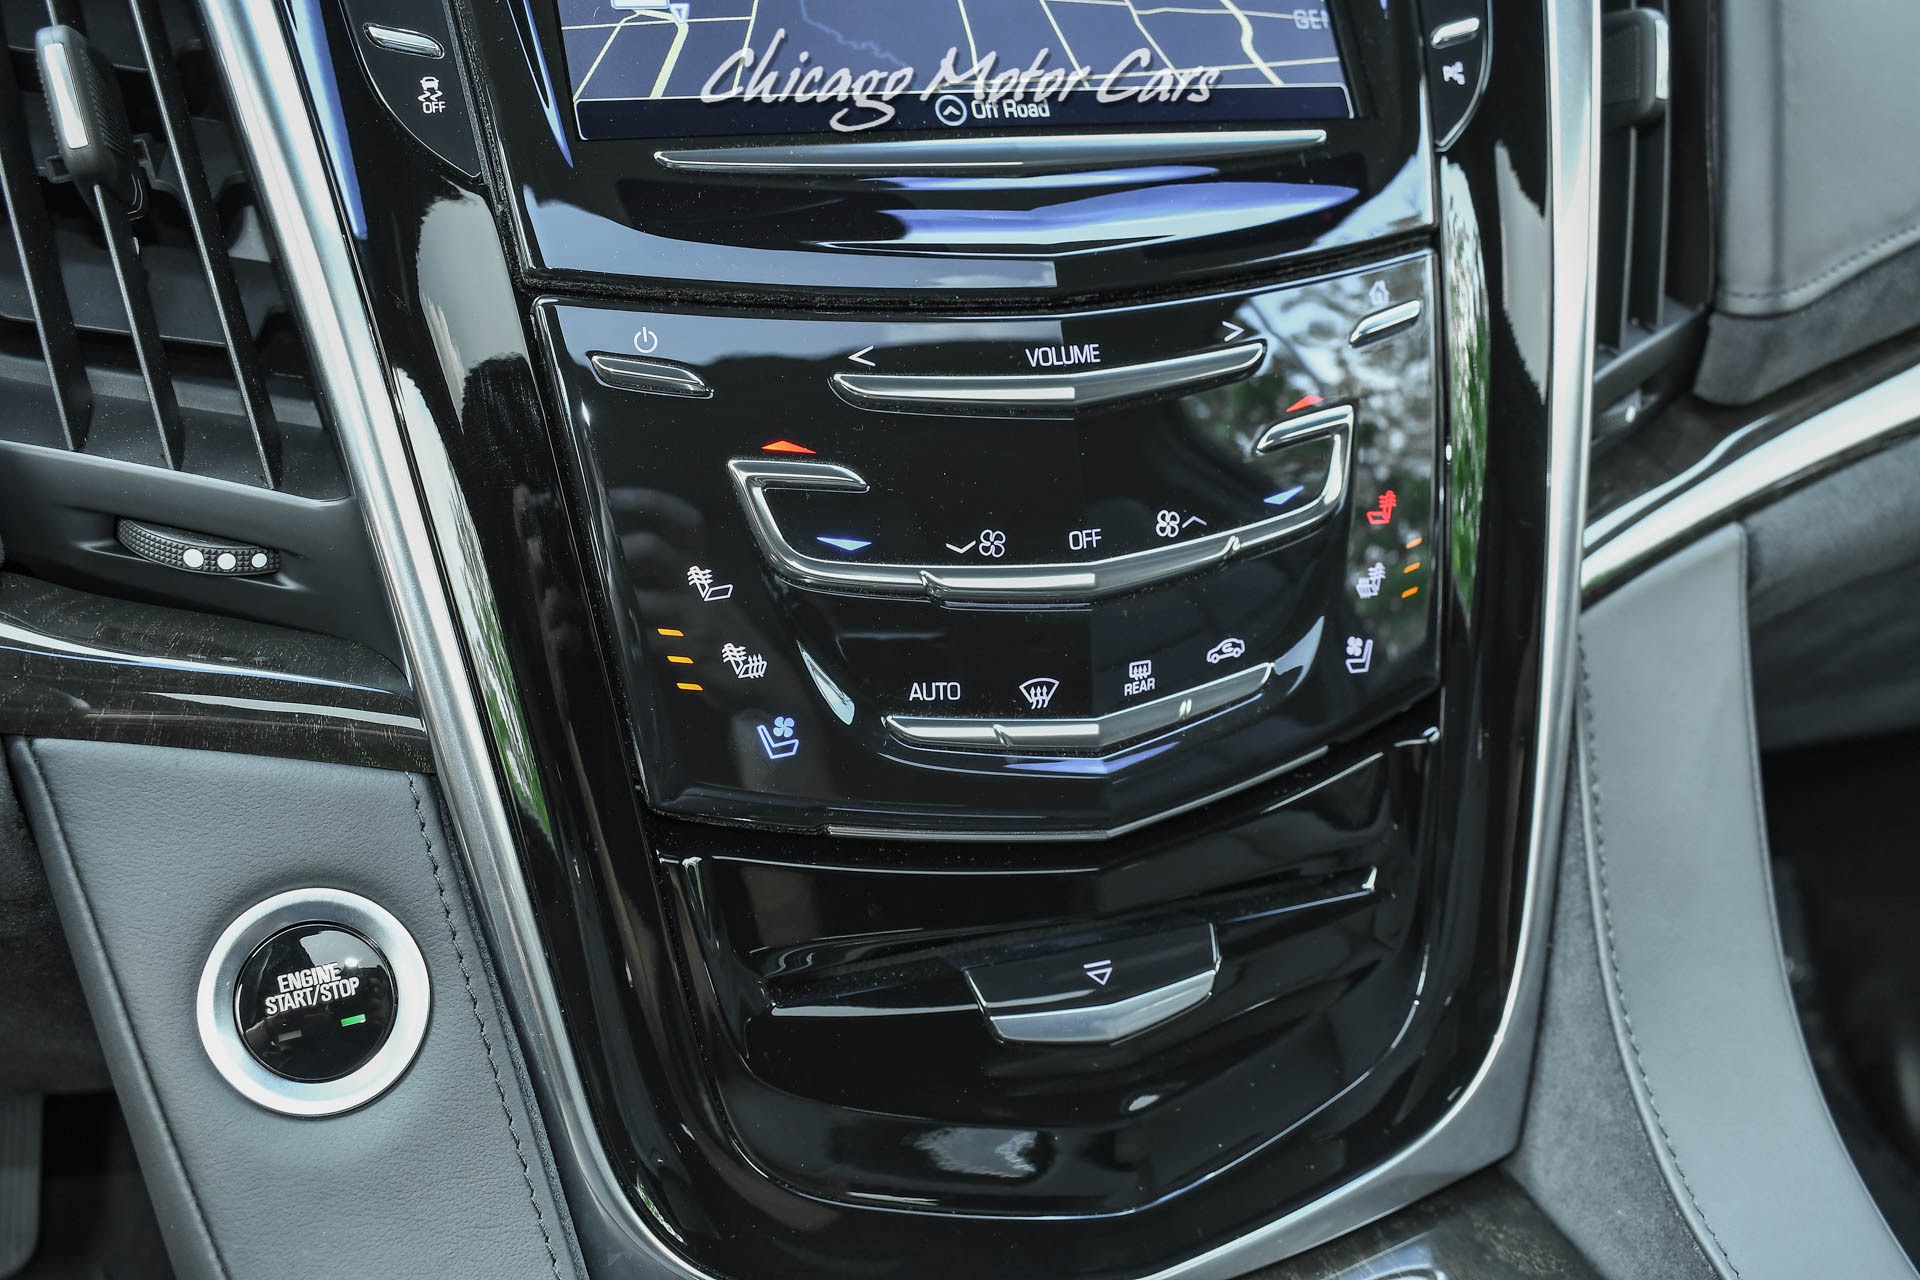 Used-2019-Cadillac-Escalade-ESV-Platinum-ONLY-1800-Miles-LOADED-VIRTUALLY-BRAND-NEW-4x4